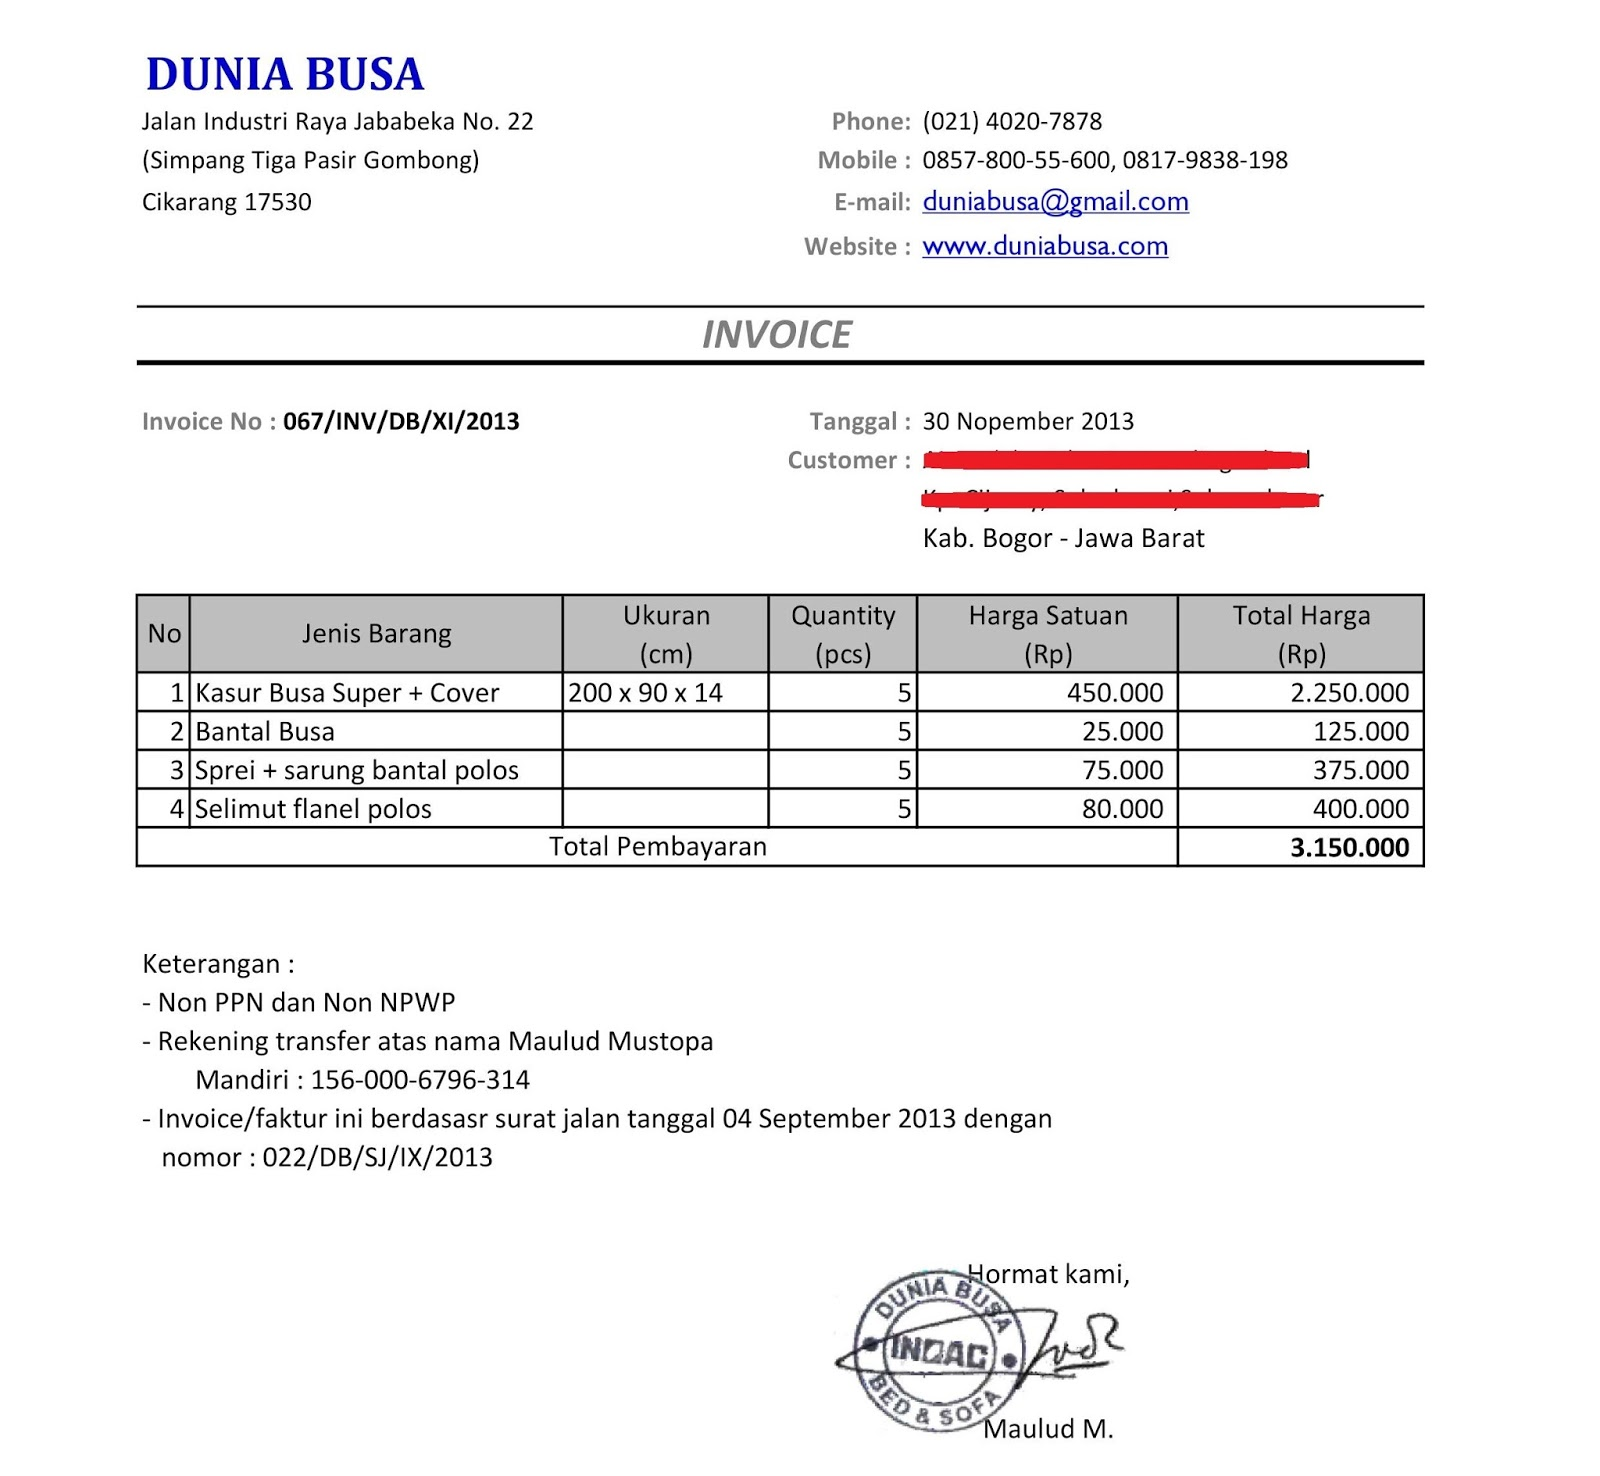 Darkfaderus  Prepossessing Free Invoice Online  Create Invoice Online  Invoice Template  With Lovely Contoh Format Invoice Atau Surat Tagihan  Brankas Arsip  Free Invoice Online With Delightful  Tacoma Invoice Also Blank Commercial Invoice Form In Addition Free Invoice Software Download For Small Business And Mechanic Invoice Template Free As Well As How To Draft An Invoice Additionally Flooring Invoice Template From Sklepco With Darkfaderus  Lovely Free Invoice Online  Create Invoice Online  Invoice Template  With Delightful Contoh Format Invoice Atau Surat Tagihan  Brankas Arsip  Free Invoice Online And Prepossessing  Tacoma Invoice Also Blank Commercial Invoice Form In Addition Free Invoice Software Download For Small Business From Sklepco